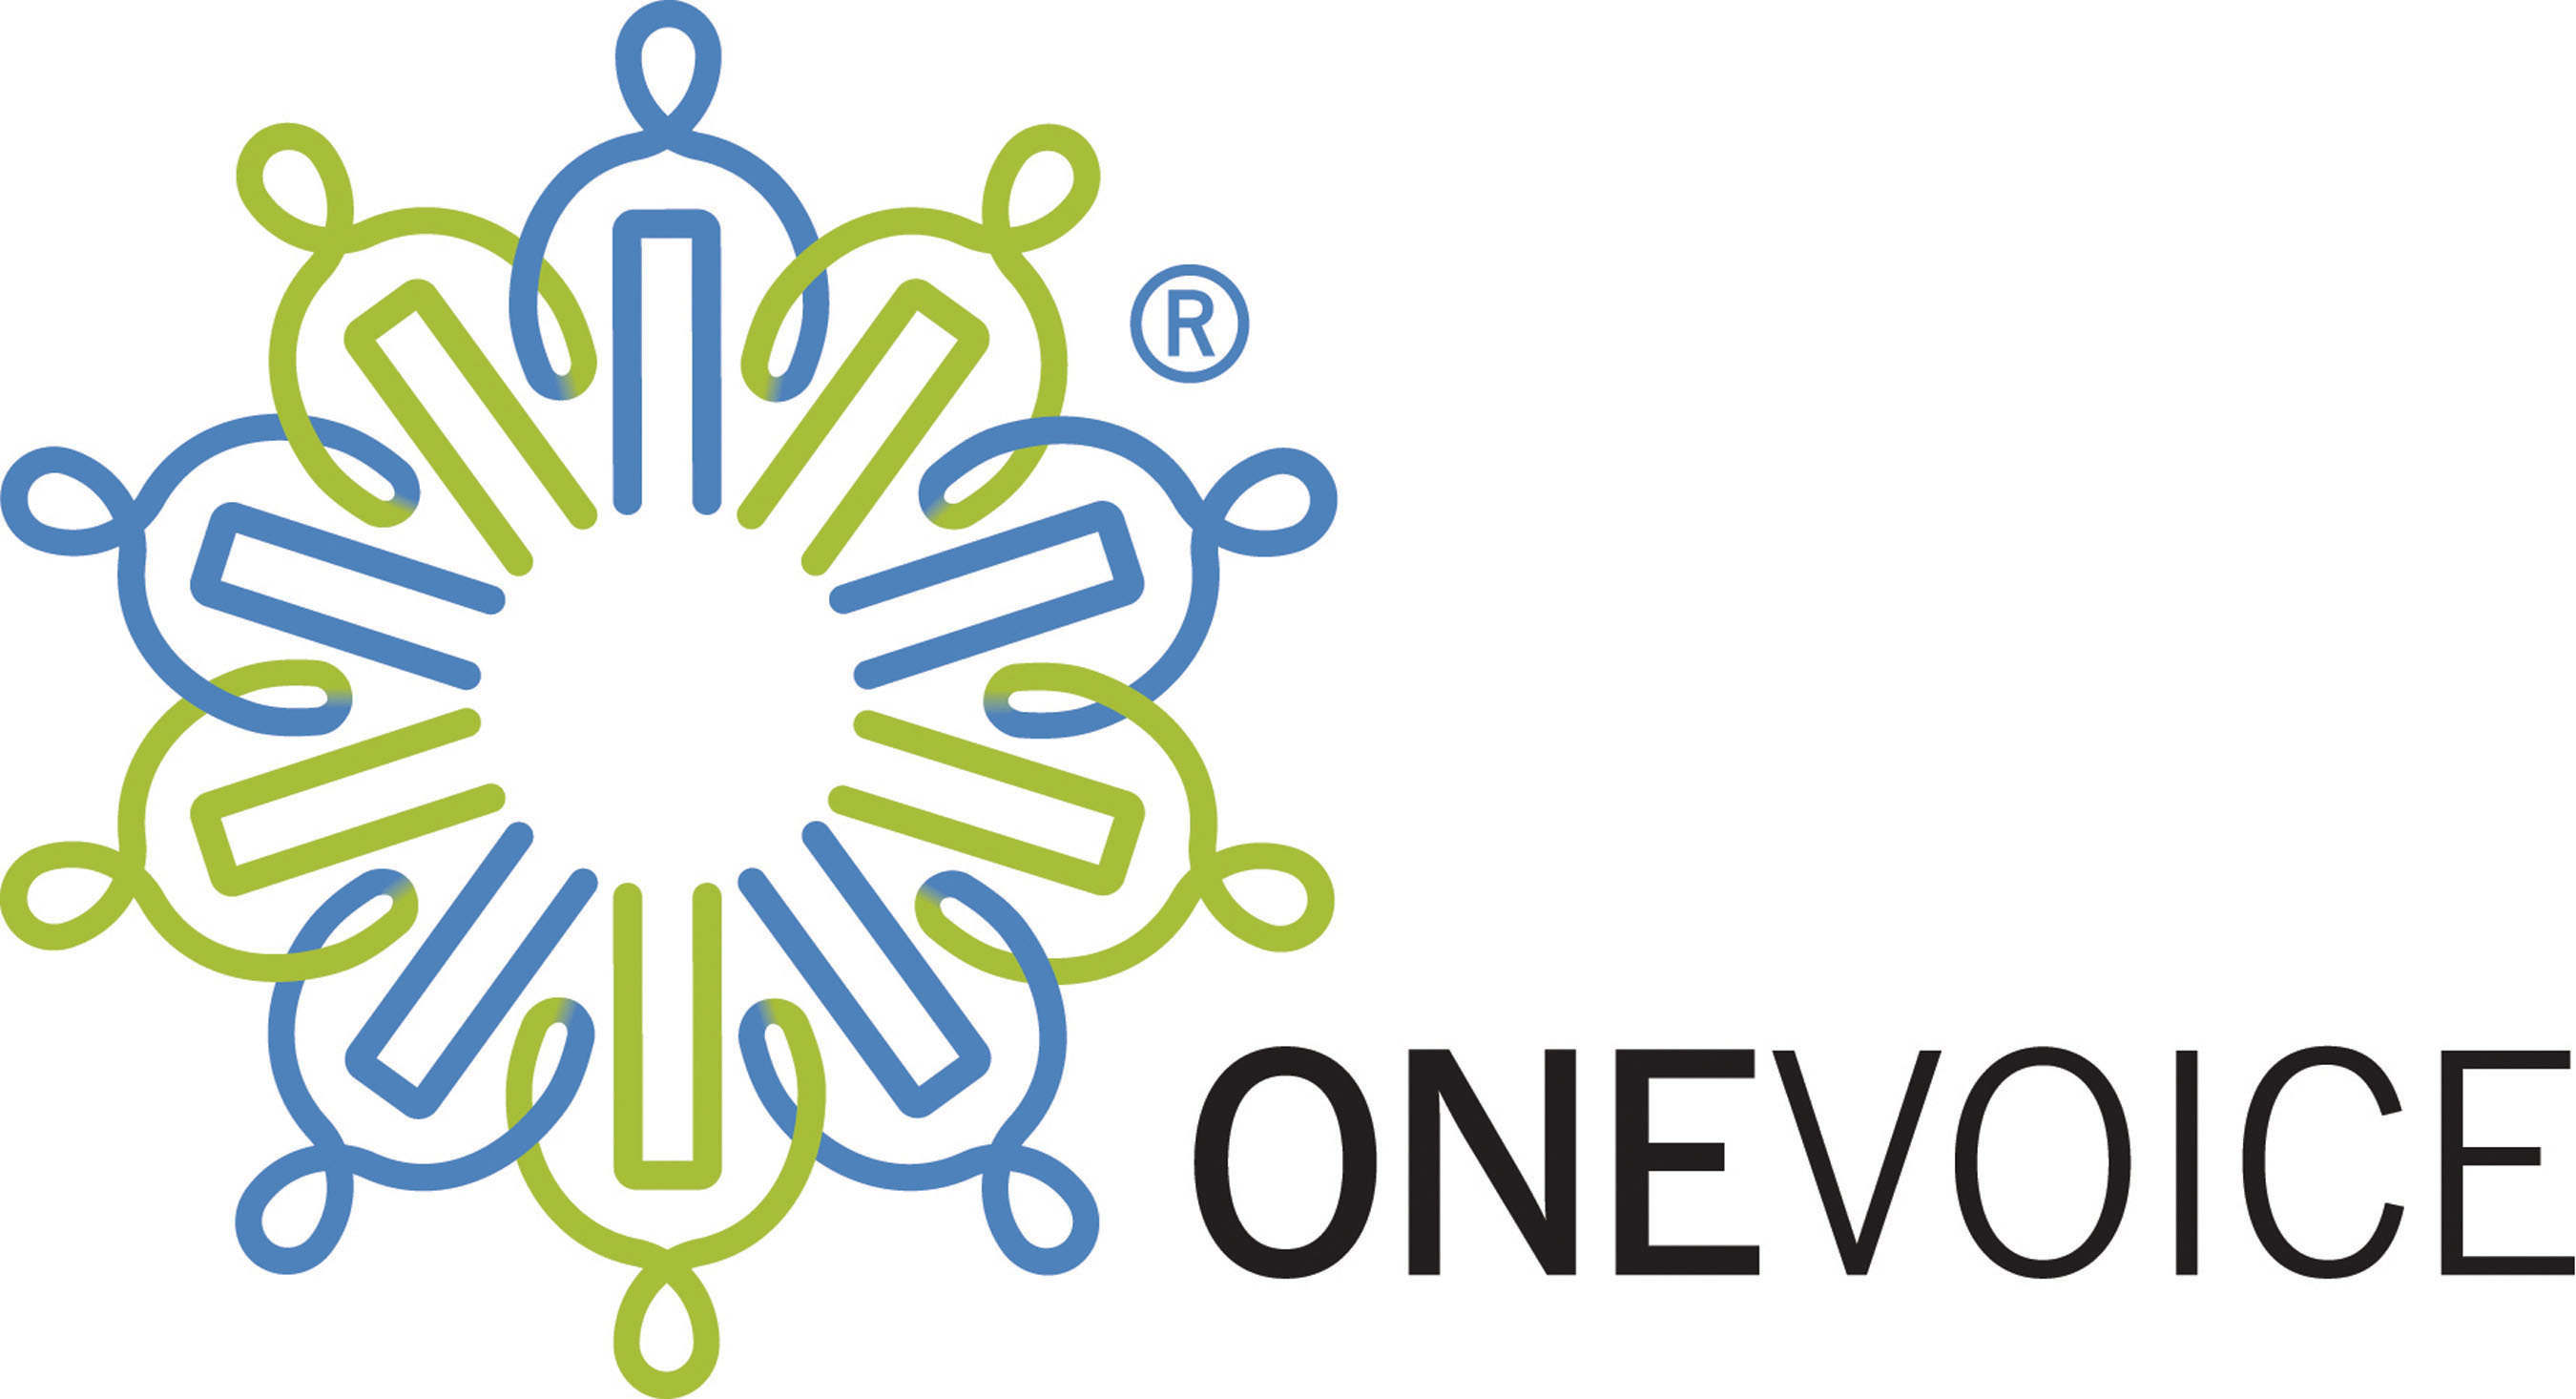 The OneVoice Movement Logo